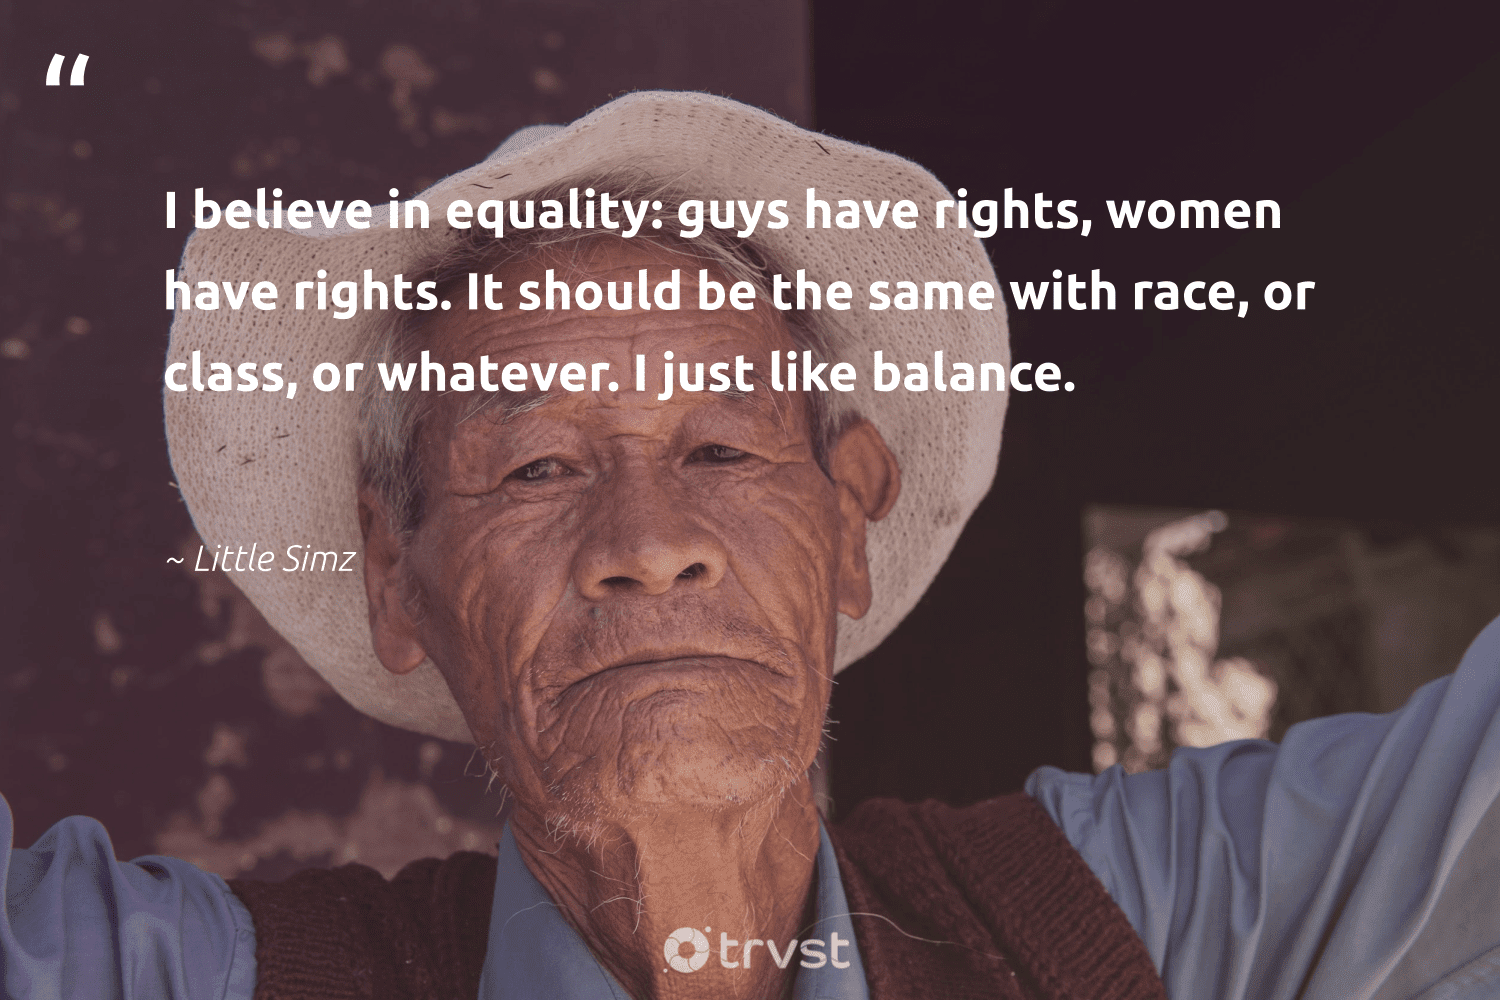 """""""I believe in equality: guys have rights, women have rights. It should be the same with race, or class, or whatever. I just like balance.""""  - Little Simz #trvst #quotes #women #balance #healthyfood #socialchange #changemakers #changetheworld #healthylifestyle #giveback #togetherwecan #dotherightthing"""